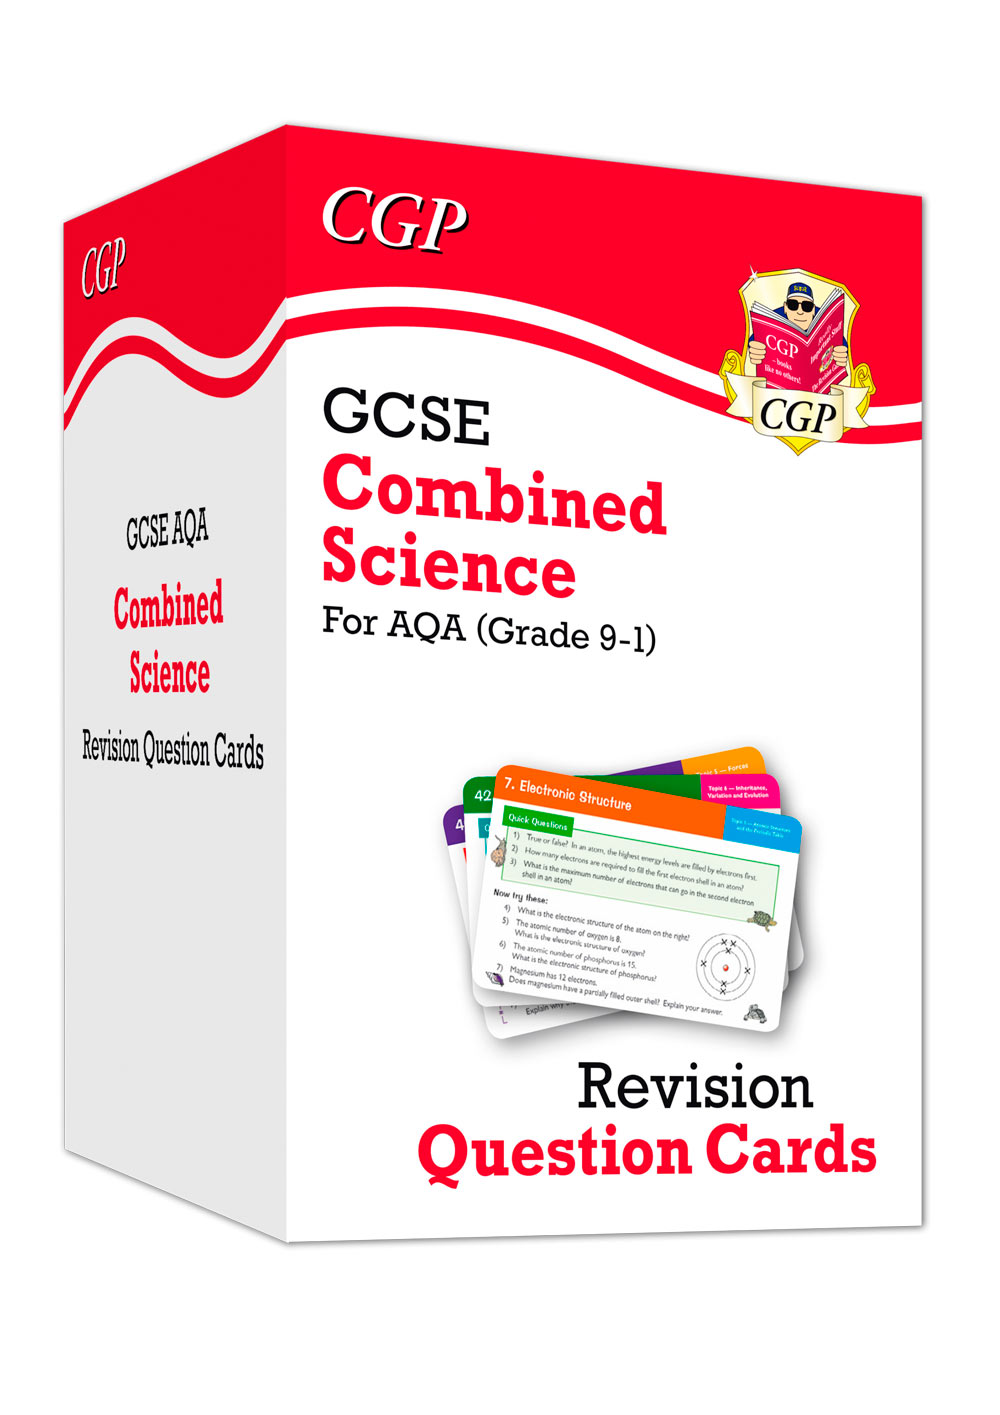 SCAF41 - New 9-1 GCSE Combined Science AQA Revision Question Cards: All-in-one Biology, Chemistry &